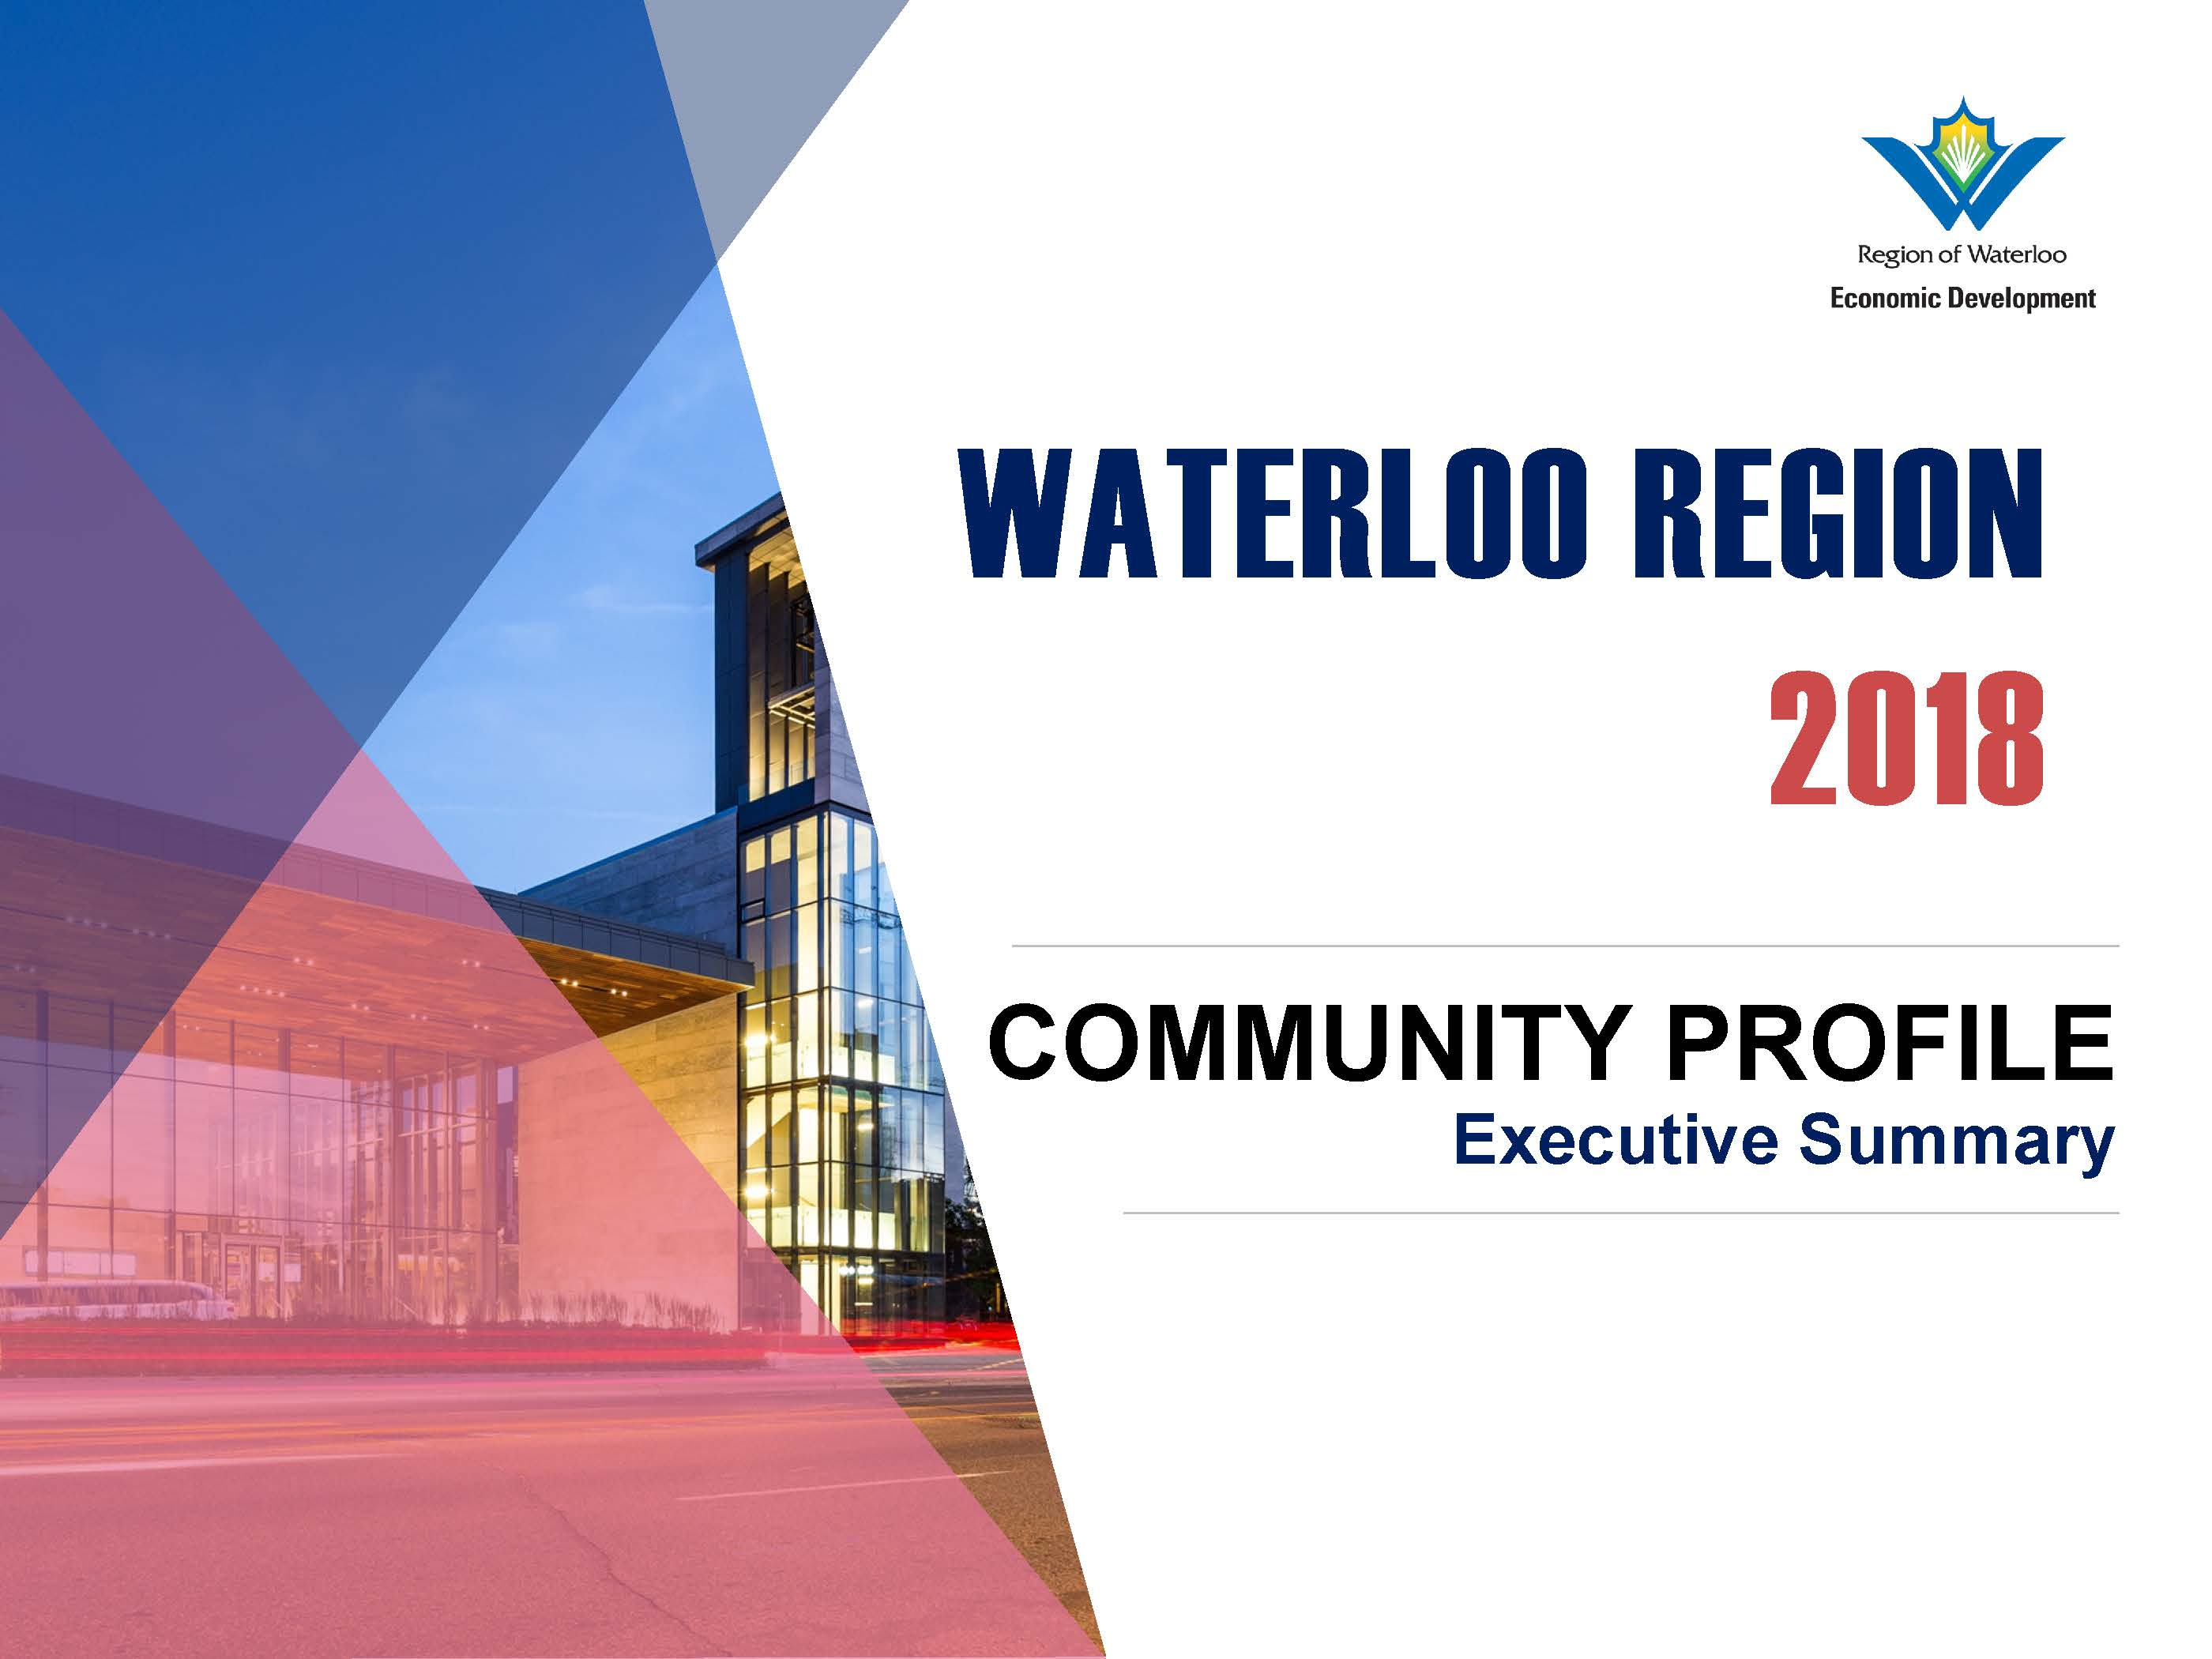 Waterloo Region Community Profile 2018 (summary)